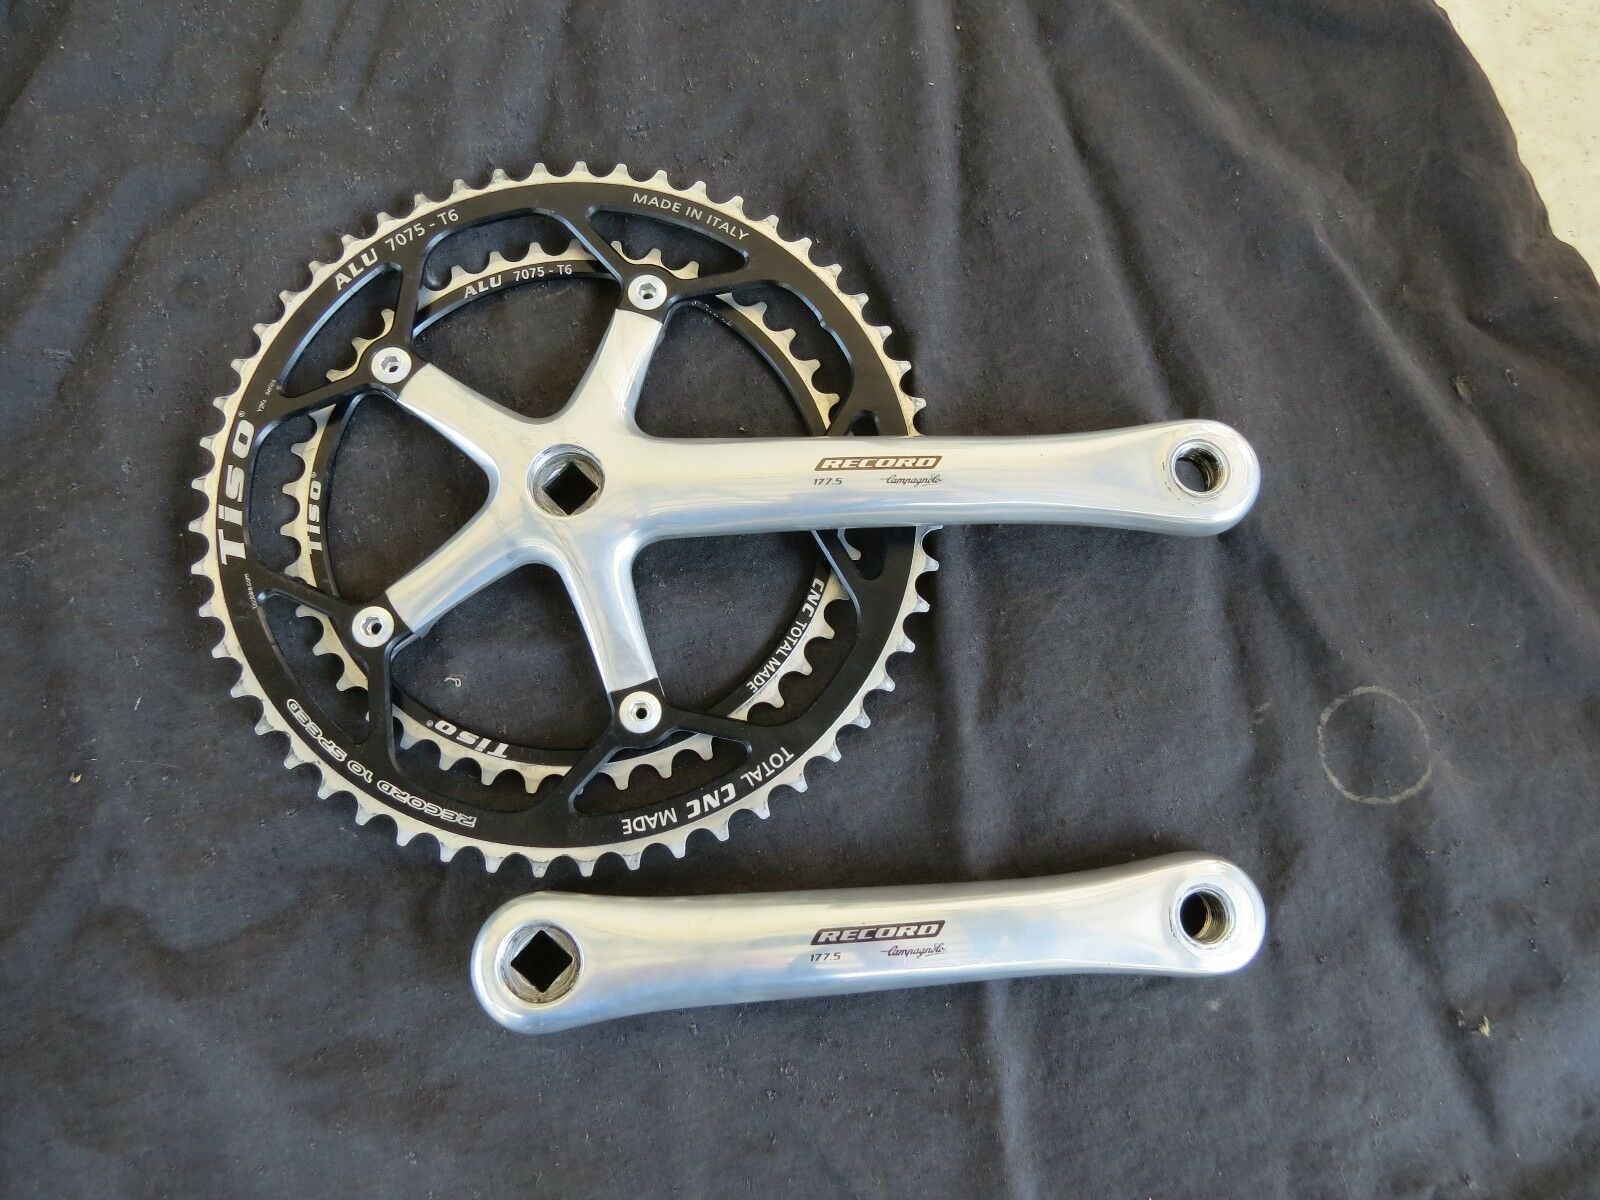 CAMPAGNOLO RECORD 10 SPEED CRANK SET 177.5 TISO 42 53 ROAD RACING  BICYCLE